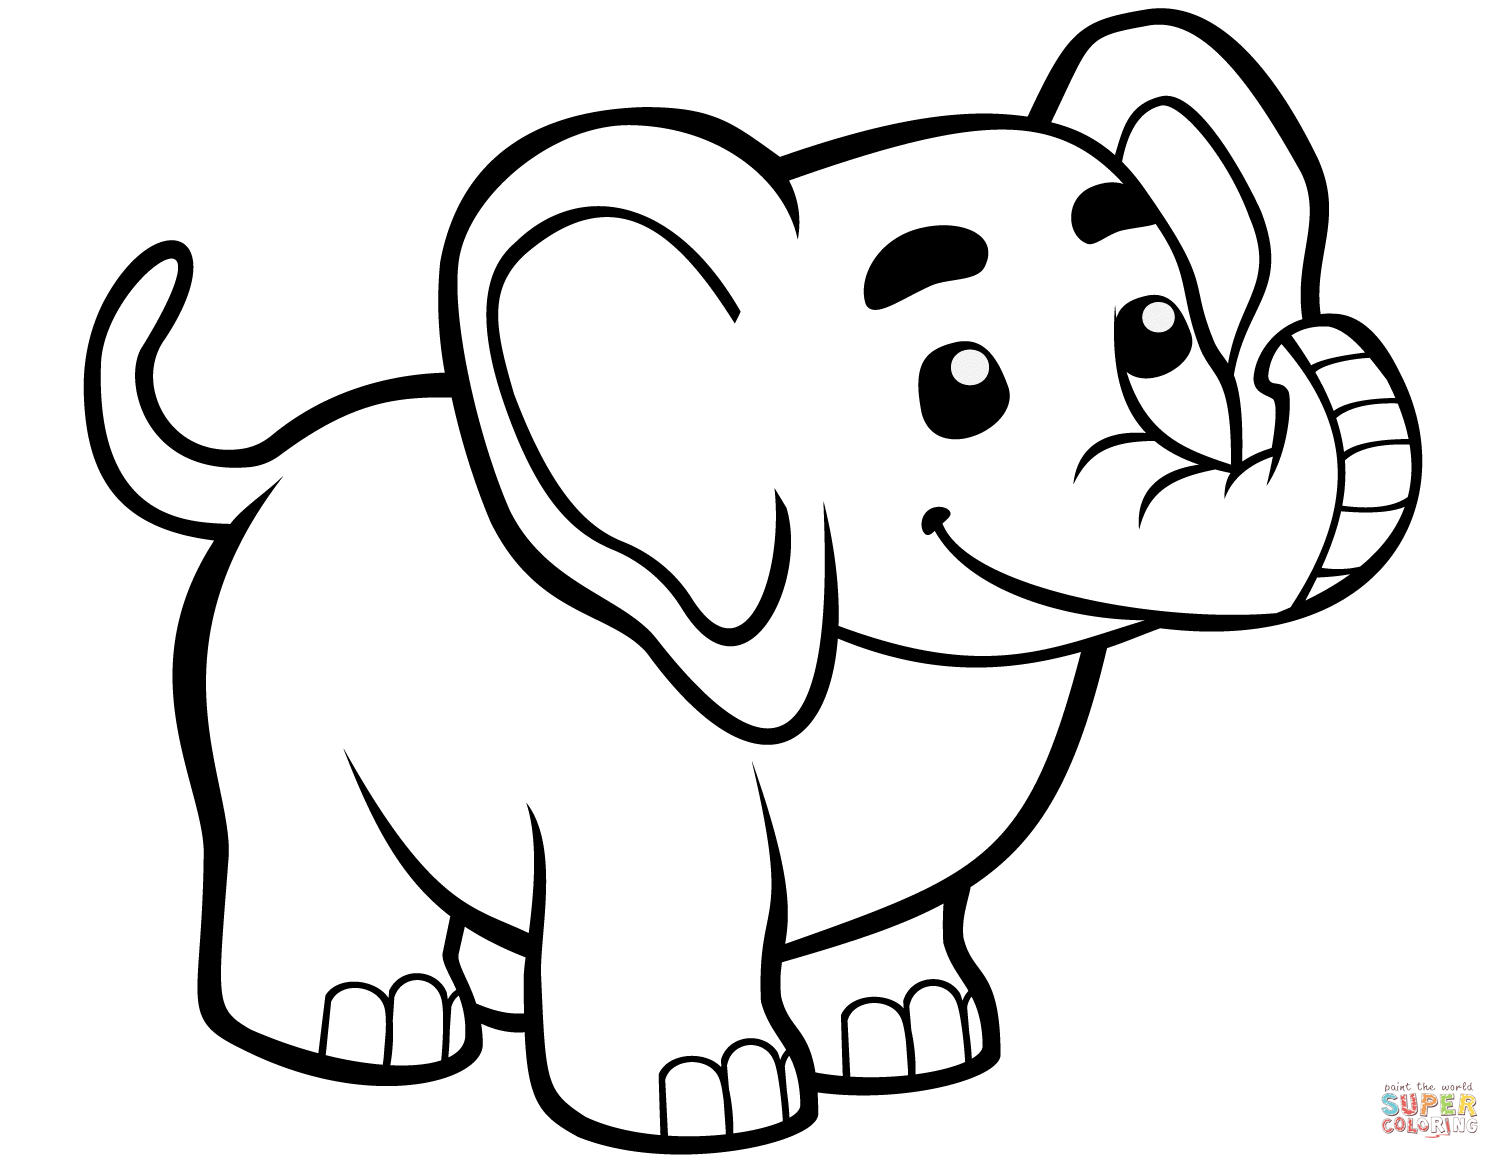 Cute Baby Elephant Coloring Page Free Printable Coloring Pages In 2020 Elephant Coloring Page Elephant Outline Zoo Coloring Pages